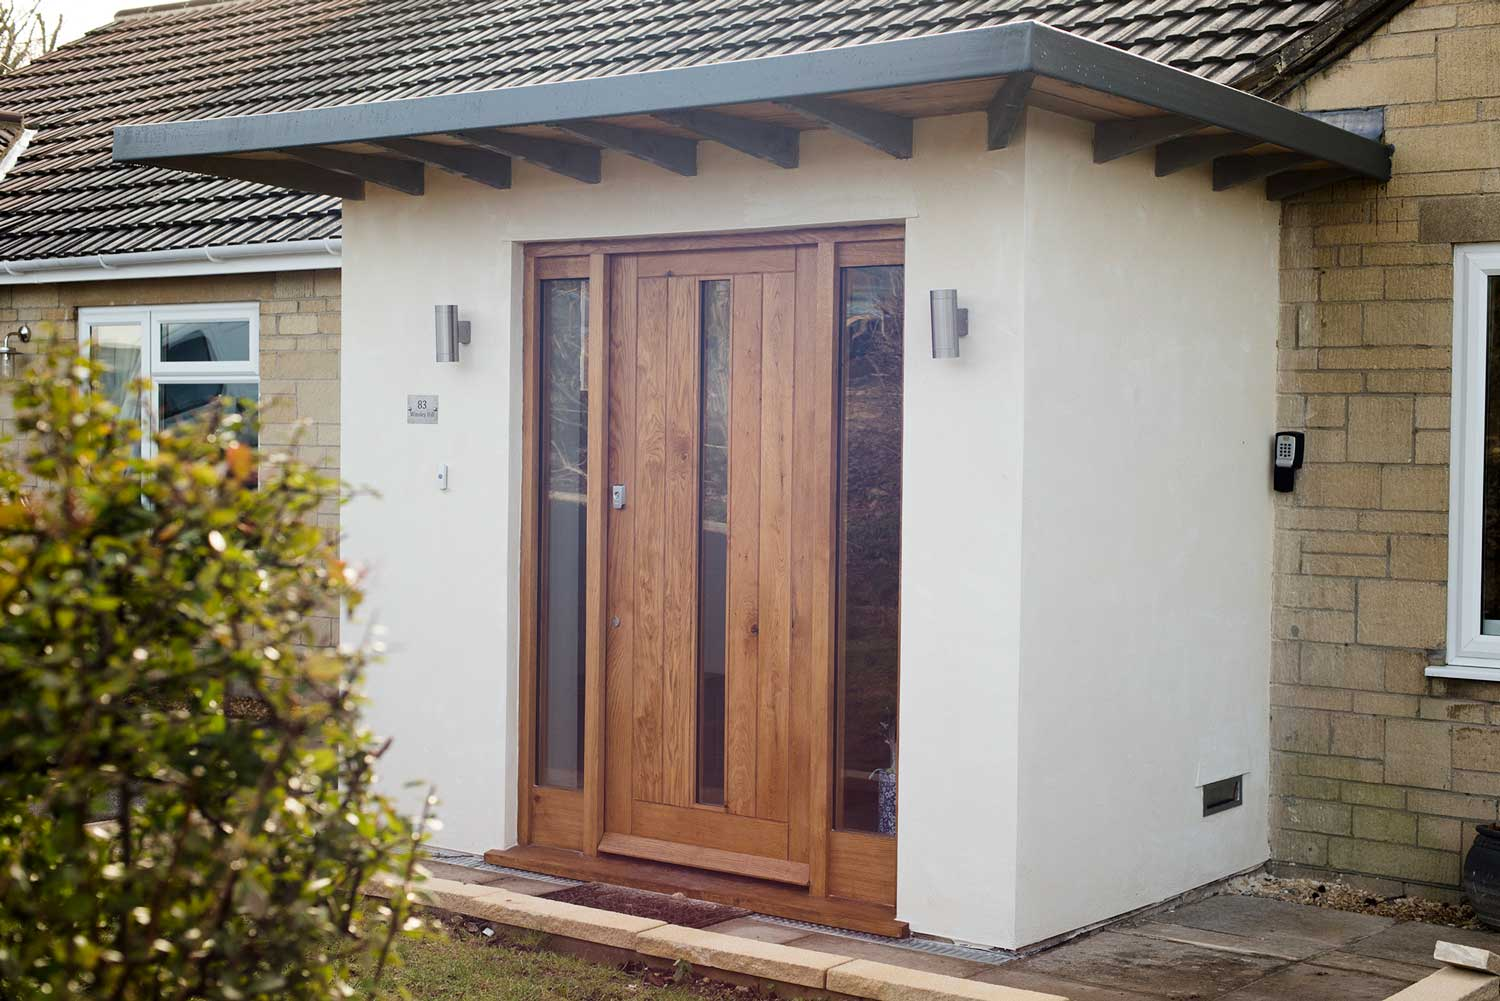 Everything you need to know about buying the best Front Door!